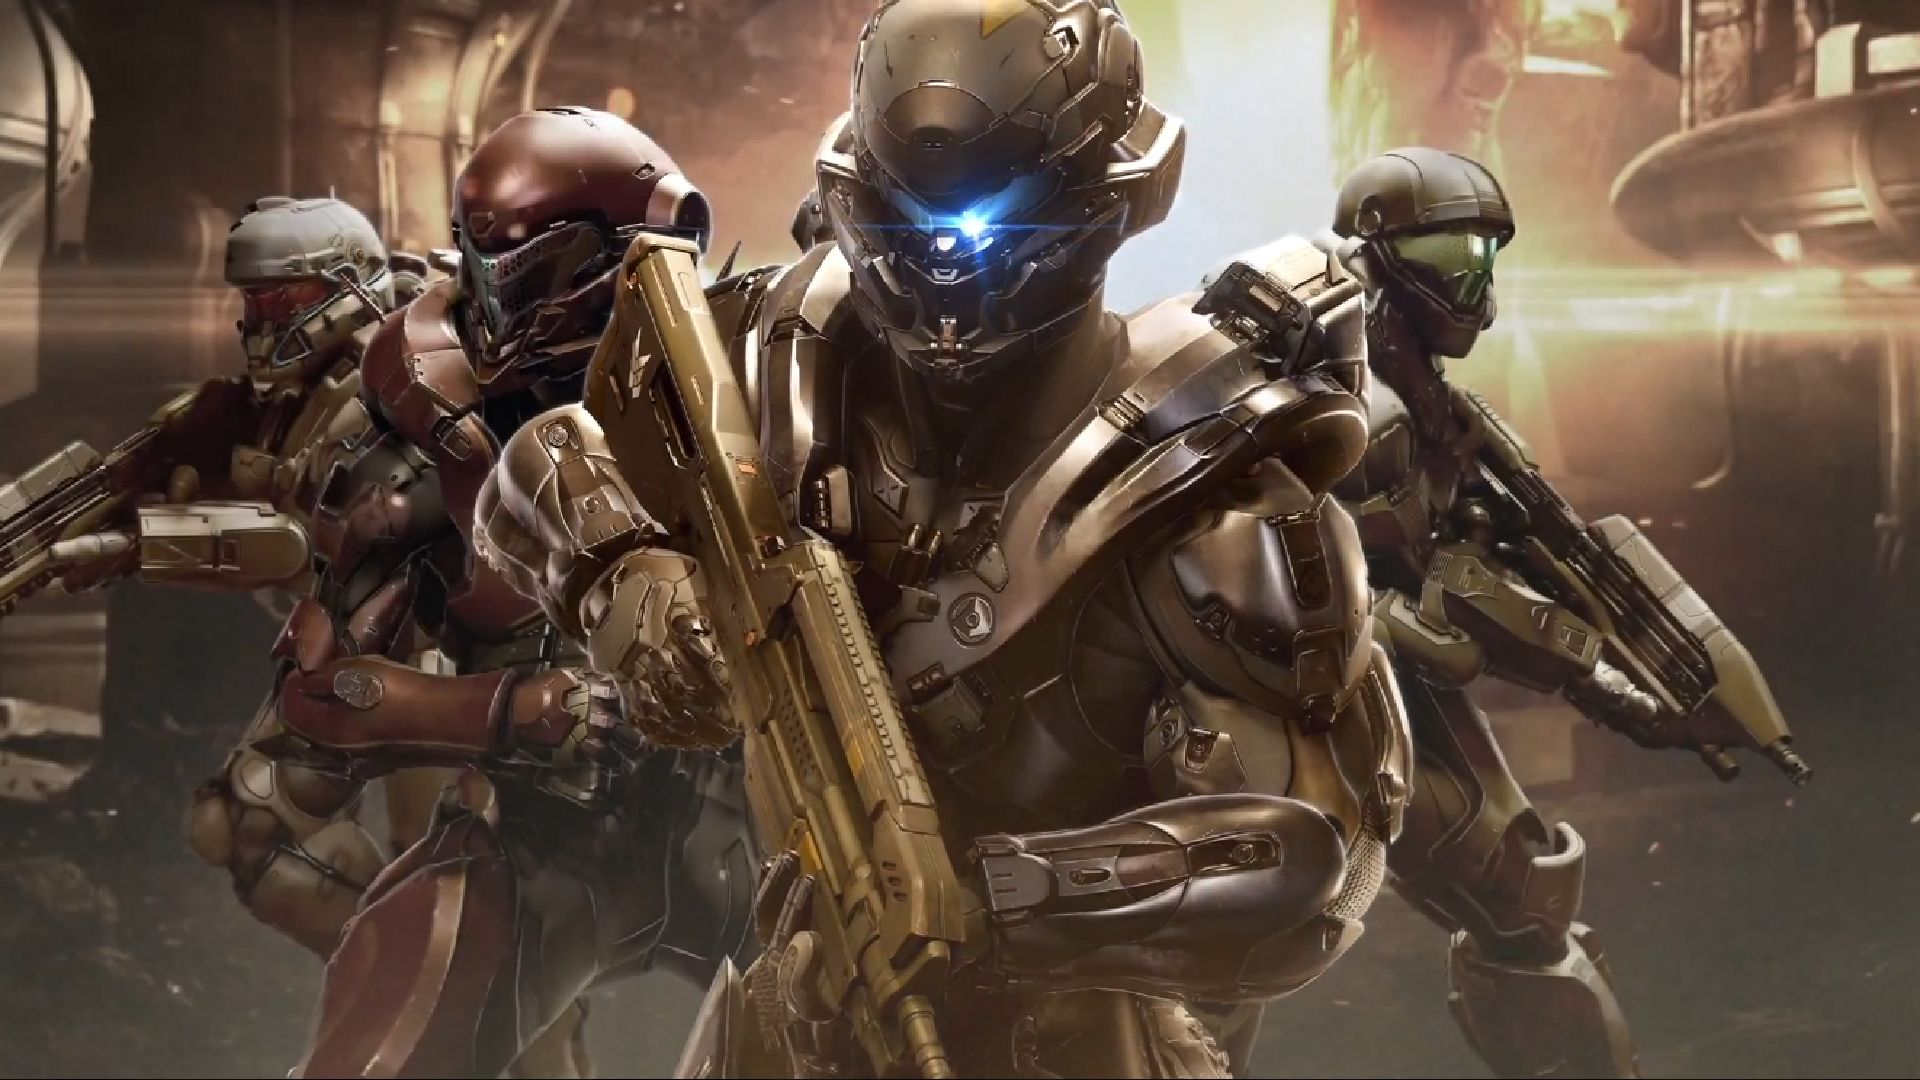 Halo 5 Fireteam Osiris Wallpapers Full Hd Halo 5 Guardians Halo 5 Halo Guardians